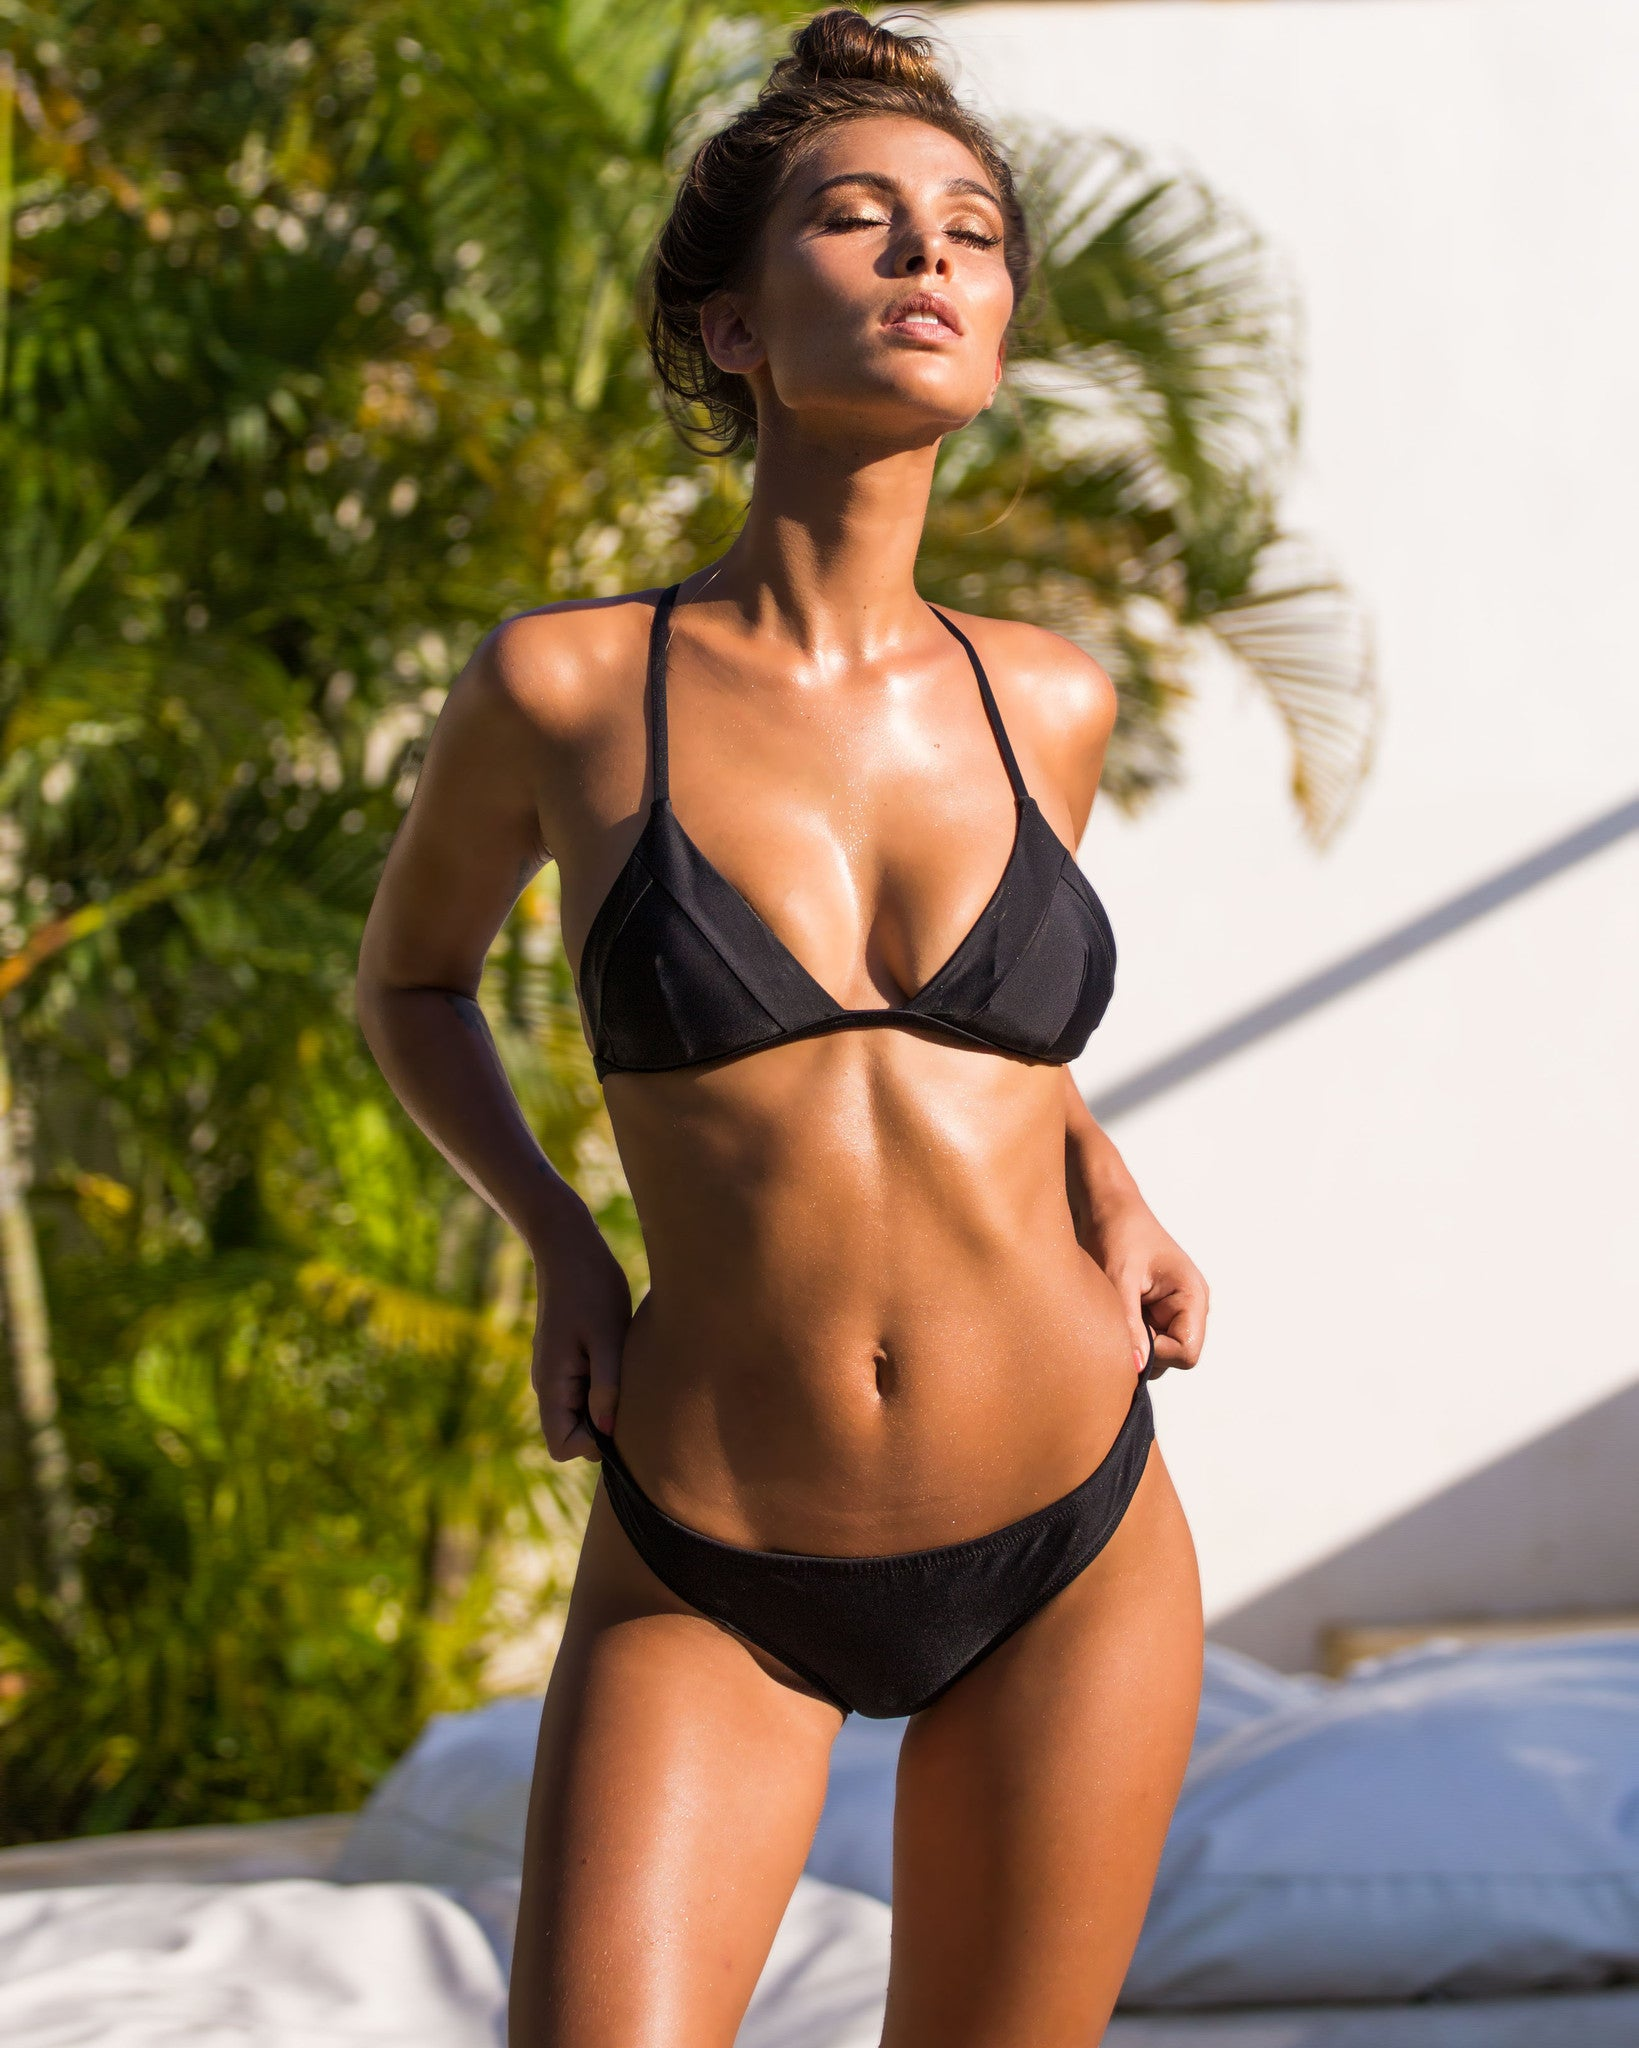 Nexpa Top - Black - cheeky cut brazilian surf bikinis Cenote Swimwear that stays on in the surf